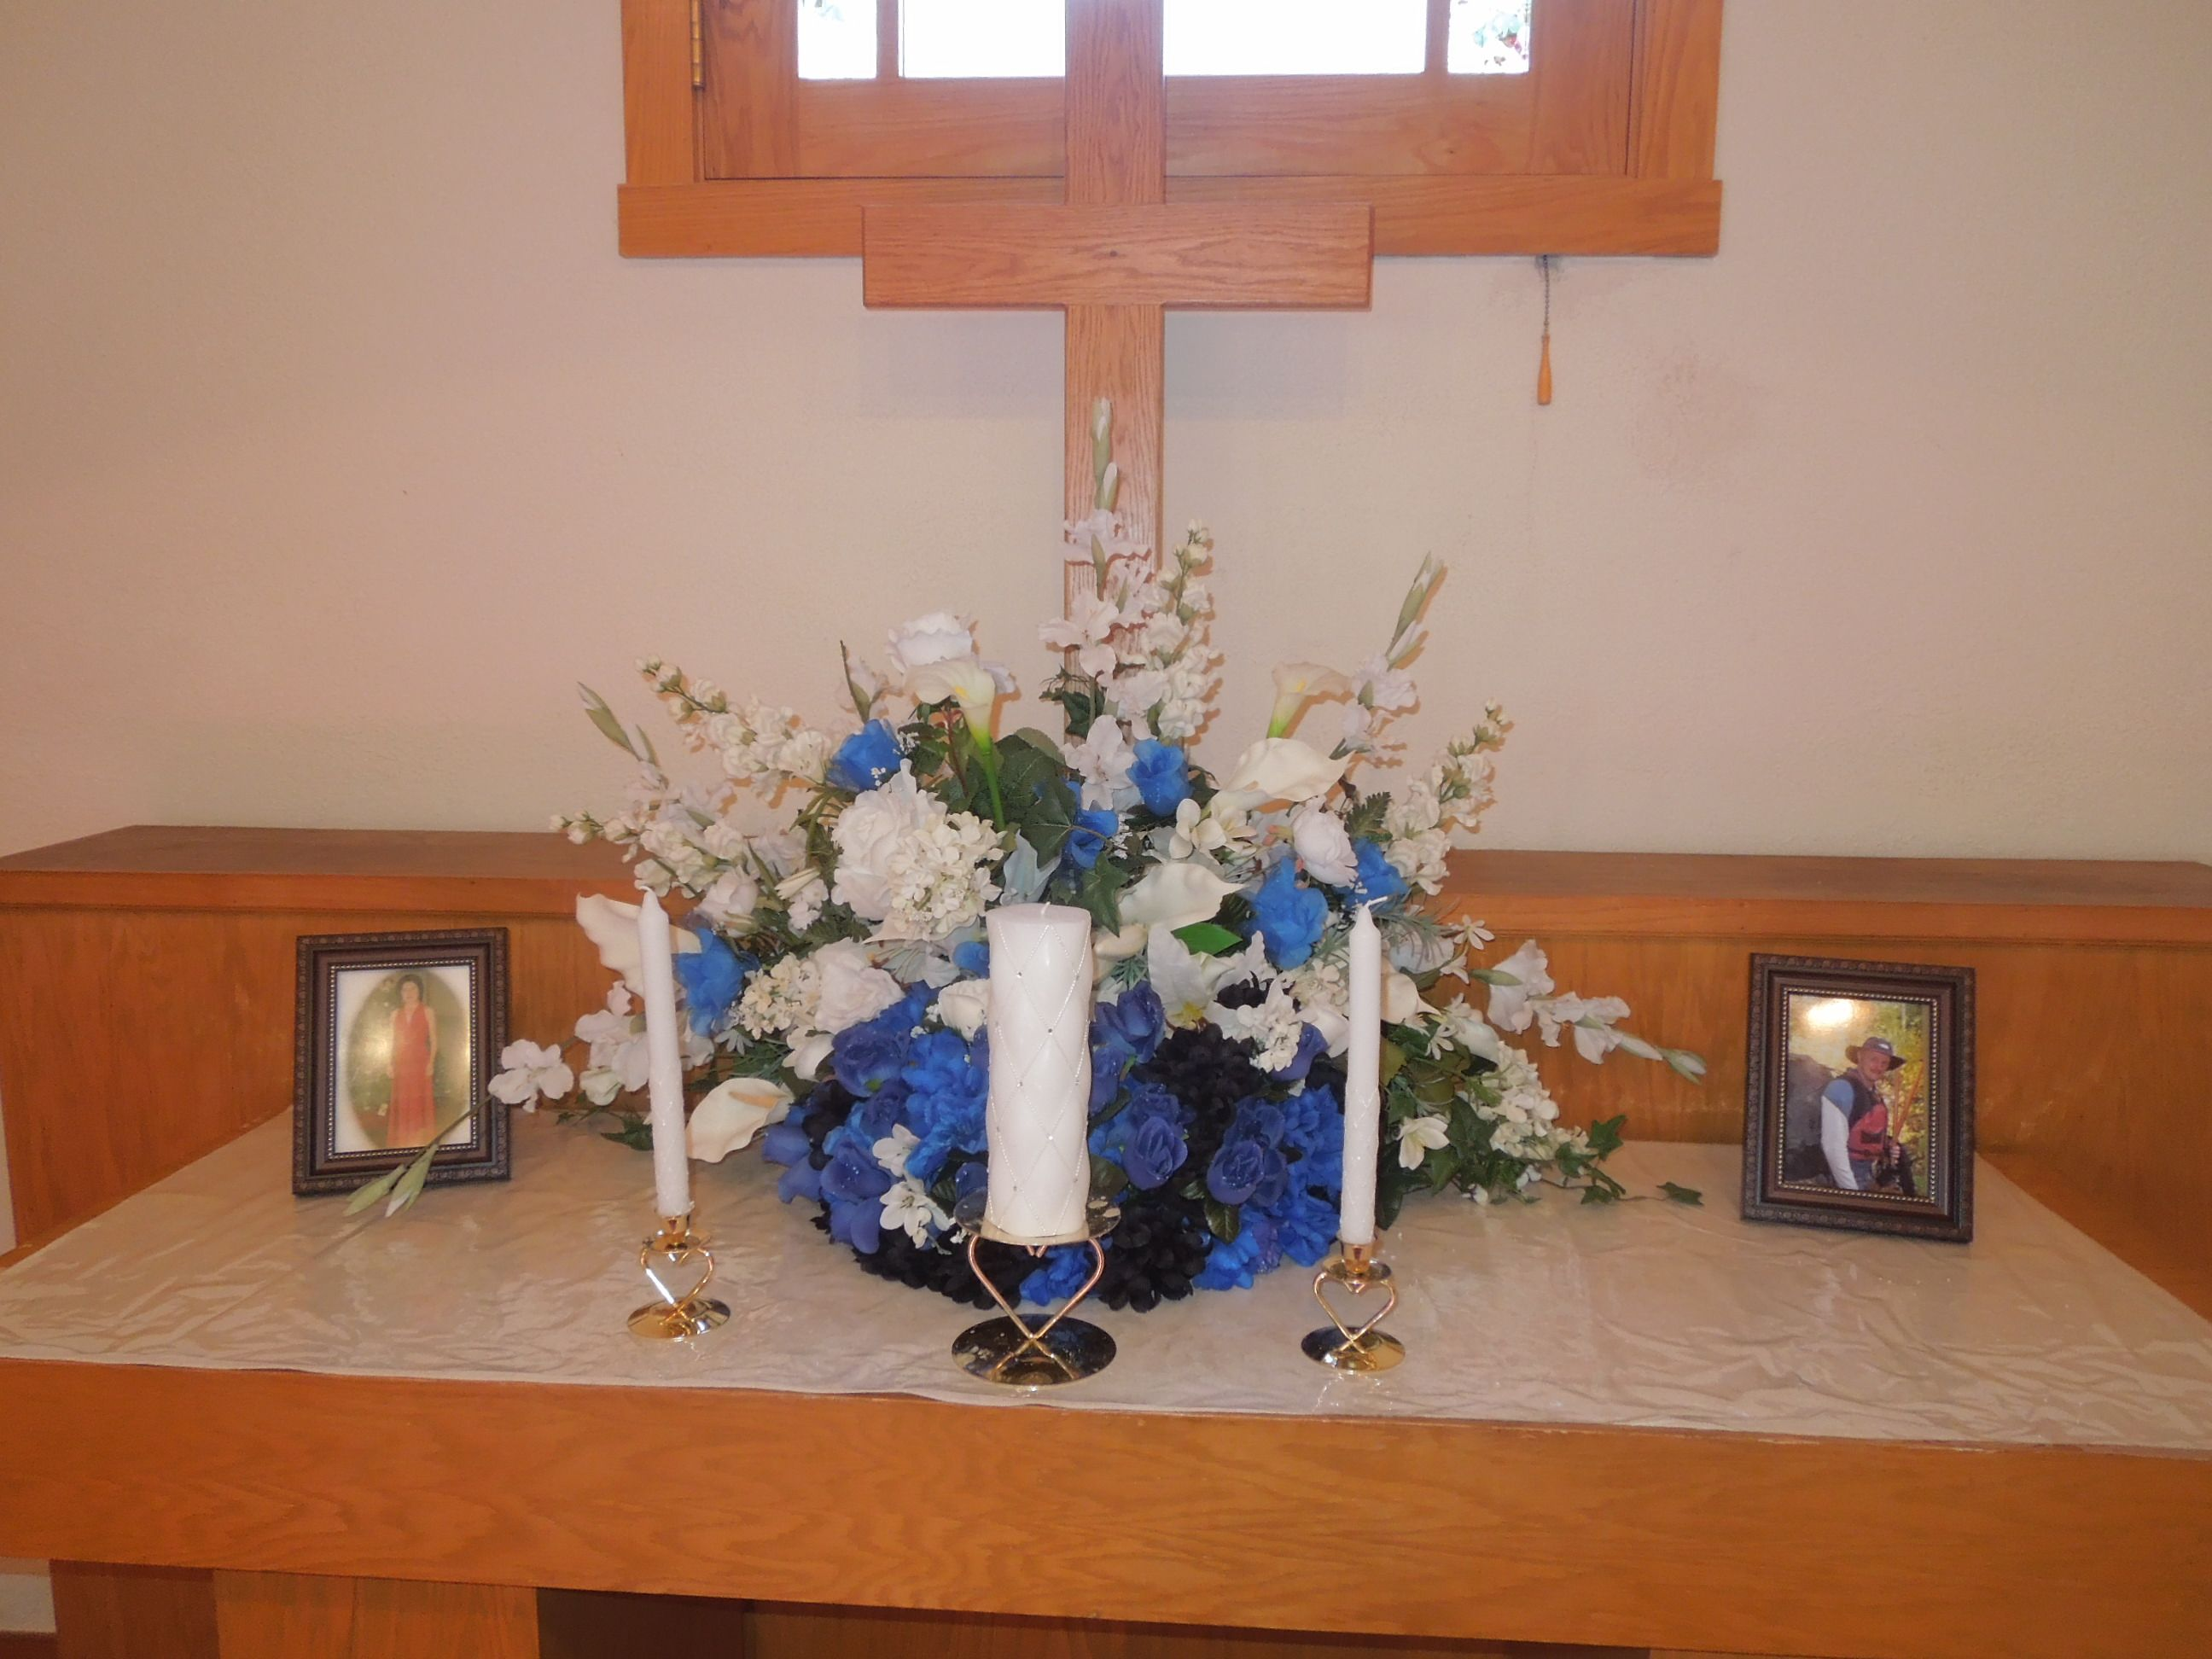 Wedding decorations: The altar at Foothills Wedding Chapel has room for flowers, an optional cross, unity candle, space for license signing, and family memorial pictures. This couple remembered loved ones who are with them in spirit.